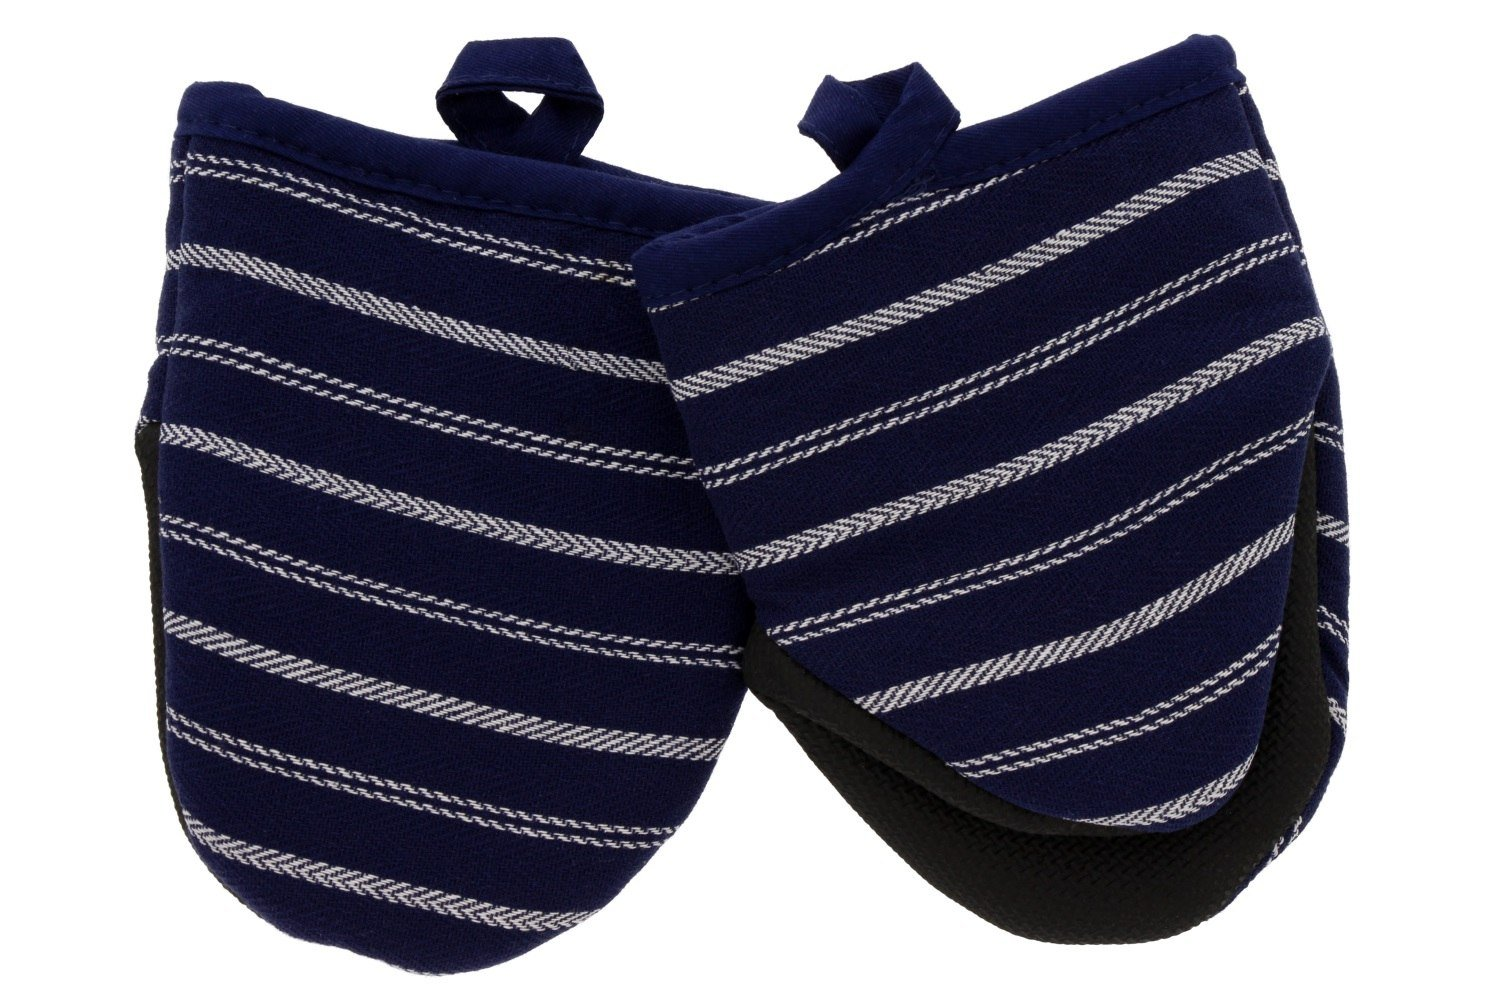 """Cuisinart Mini Oven Mitts w/Neoprene for Easy Gripping, Twill Stripe Kitchen Accessory, Heat Resistant up to 500 degrees F, 5.5"""" x 7"""", Set of 2 - Navy Aura"""